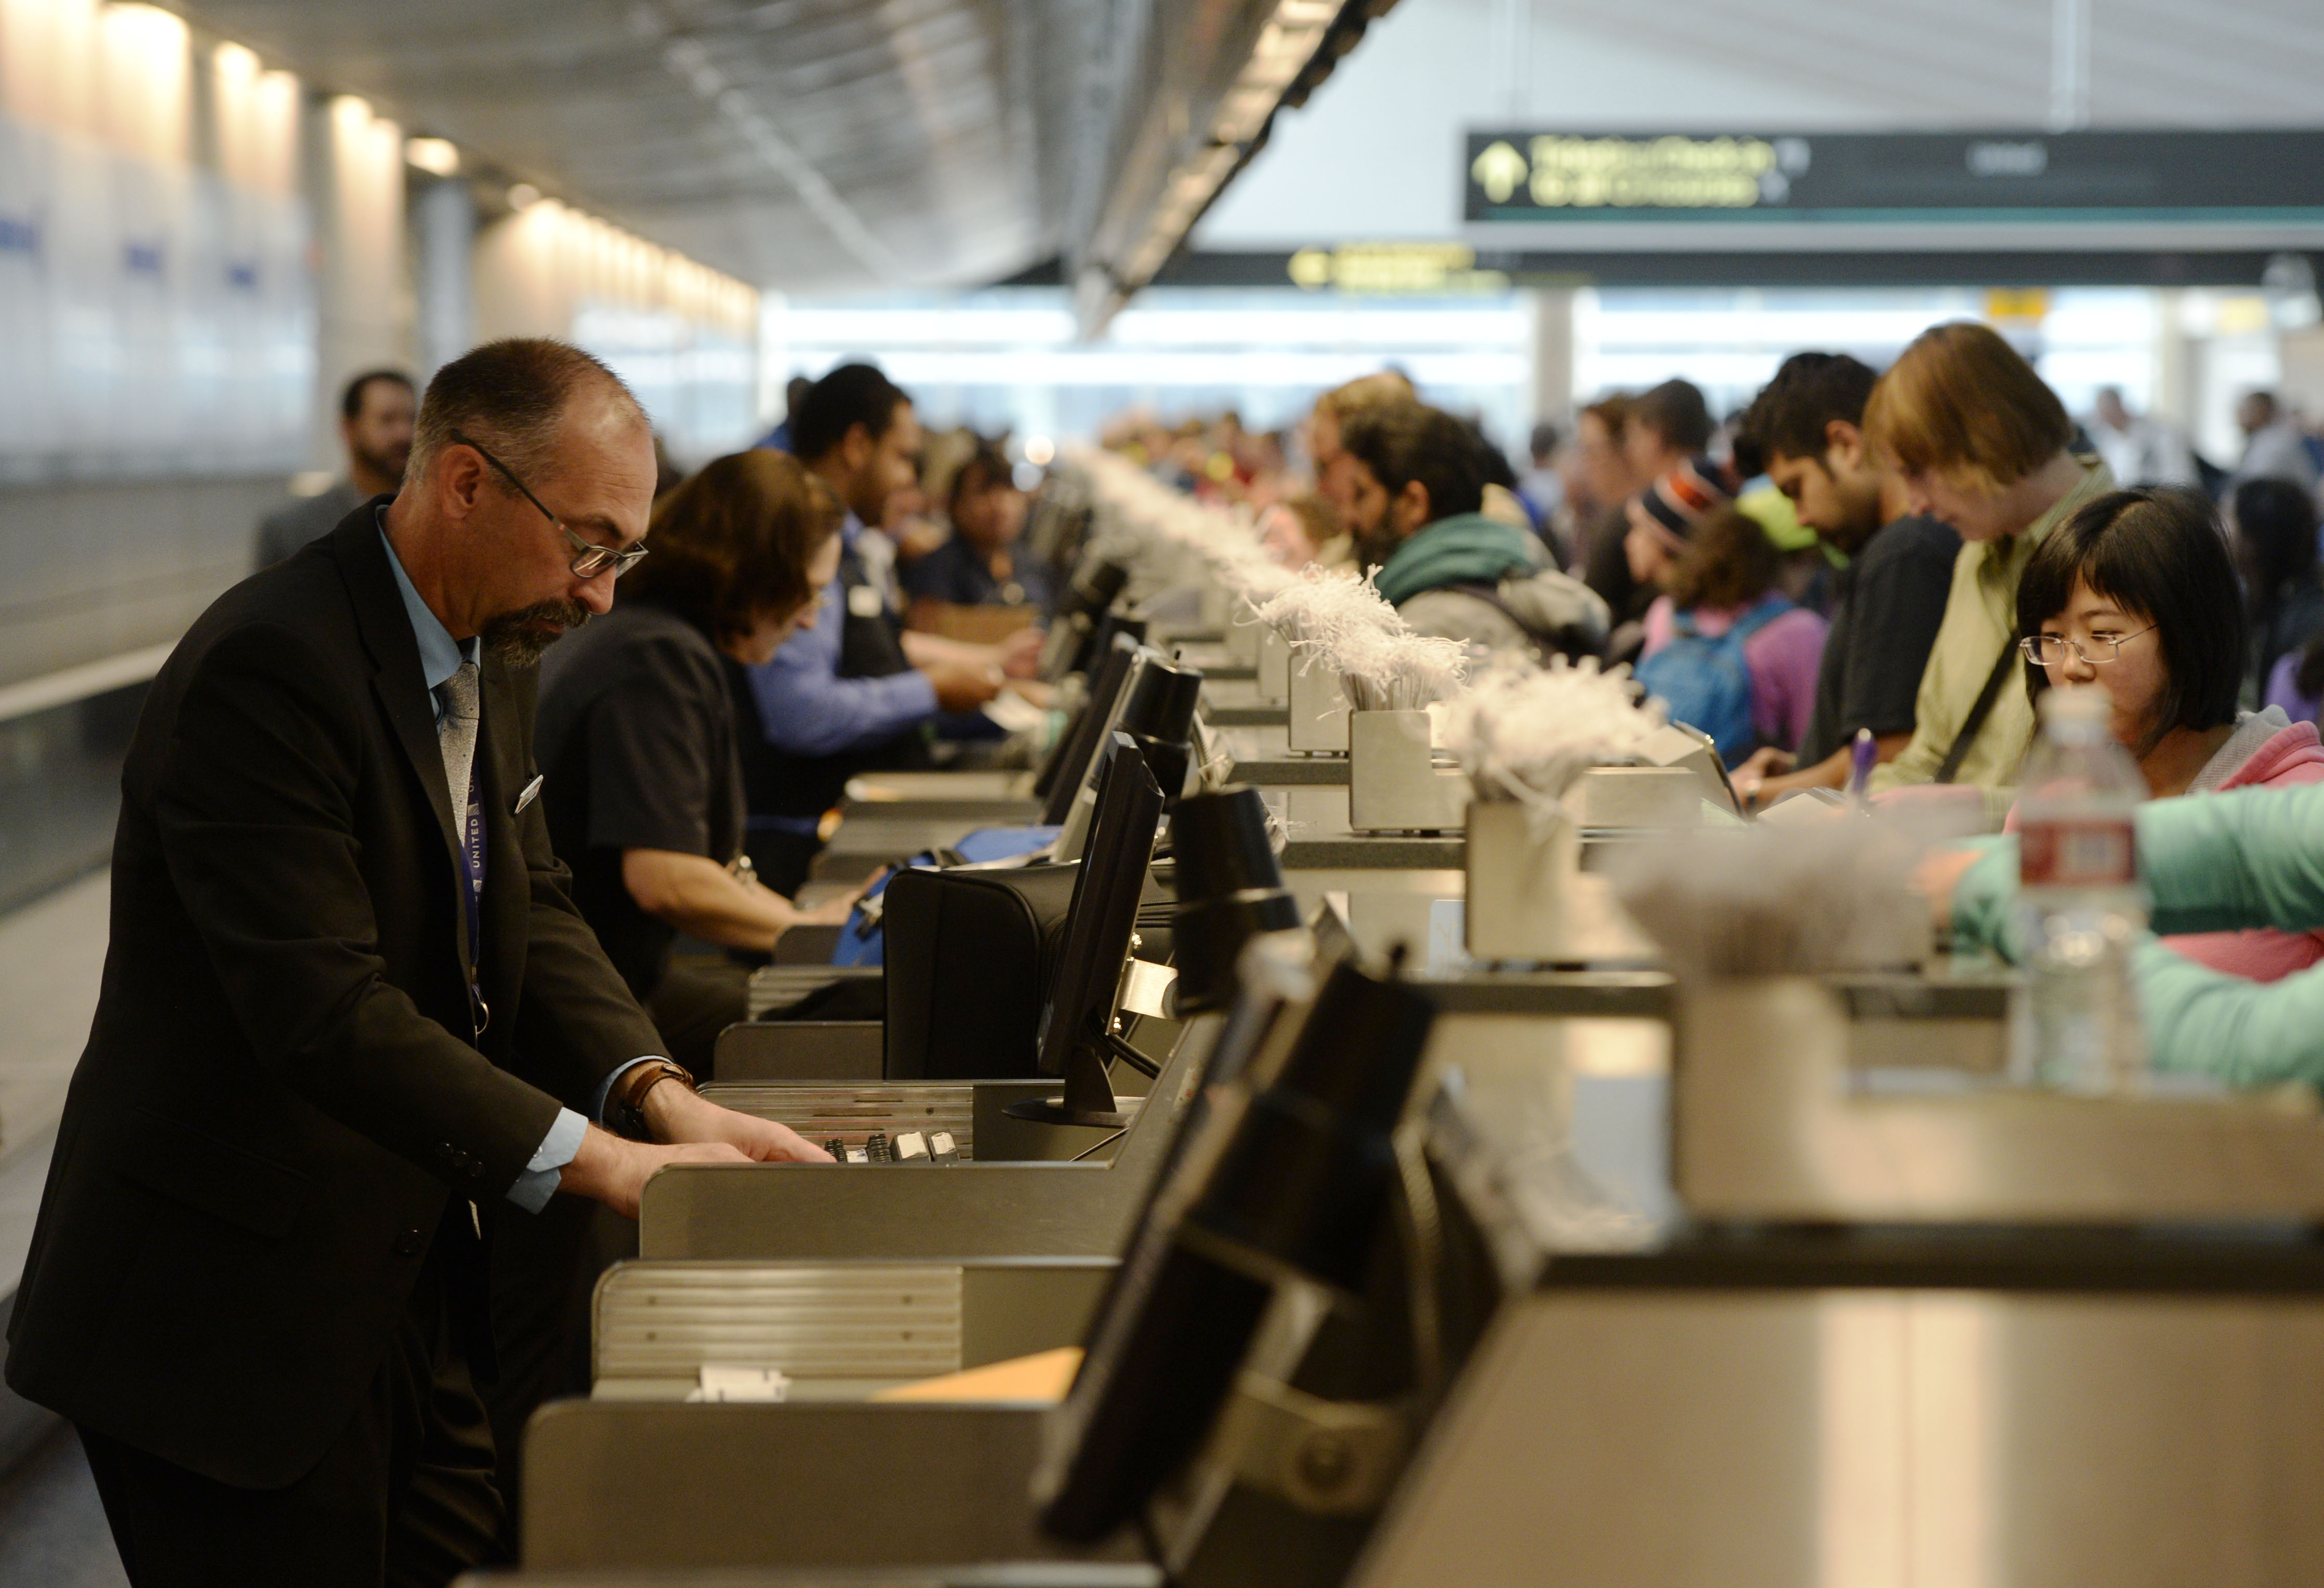 Flaws in Amadeus' airline booking system made it easy to change